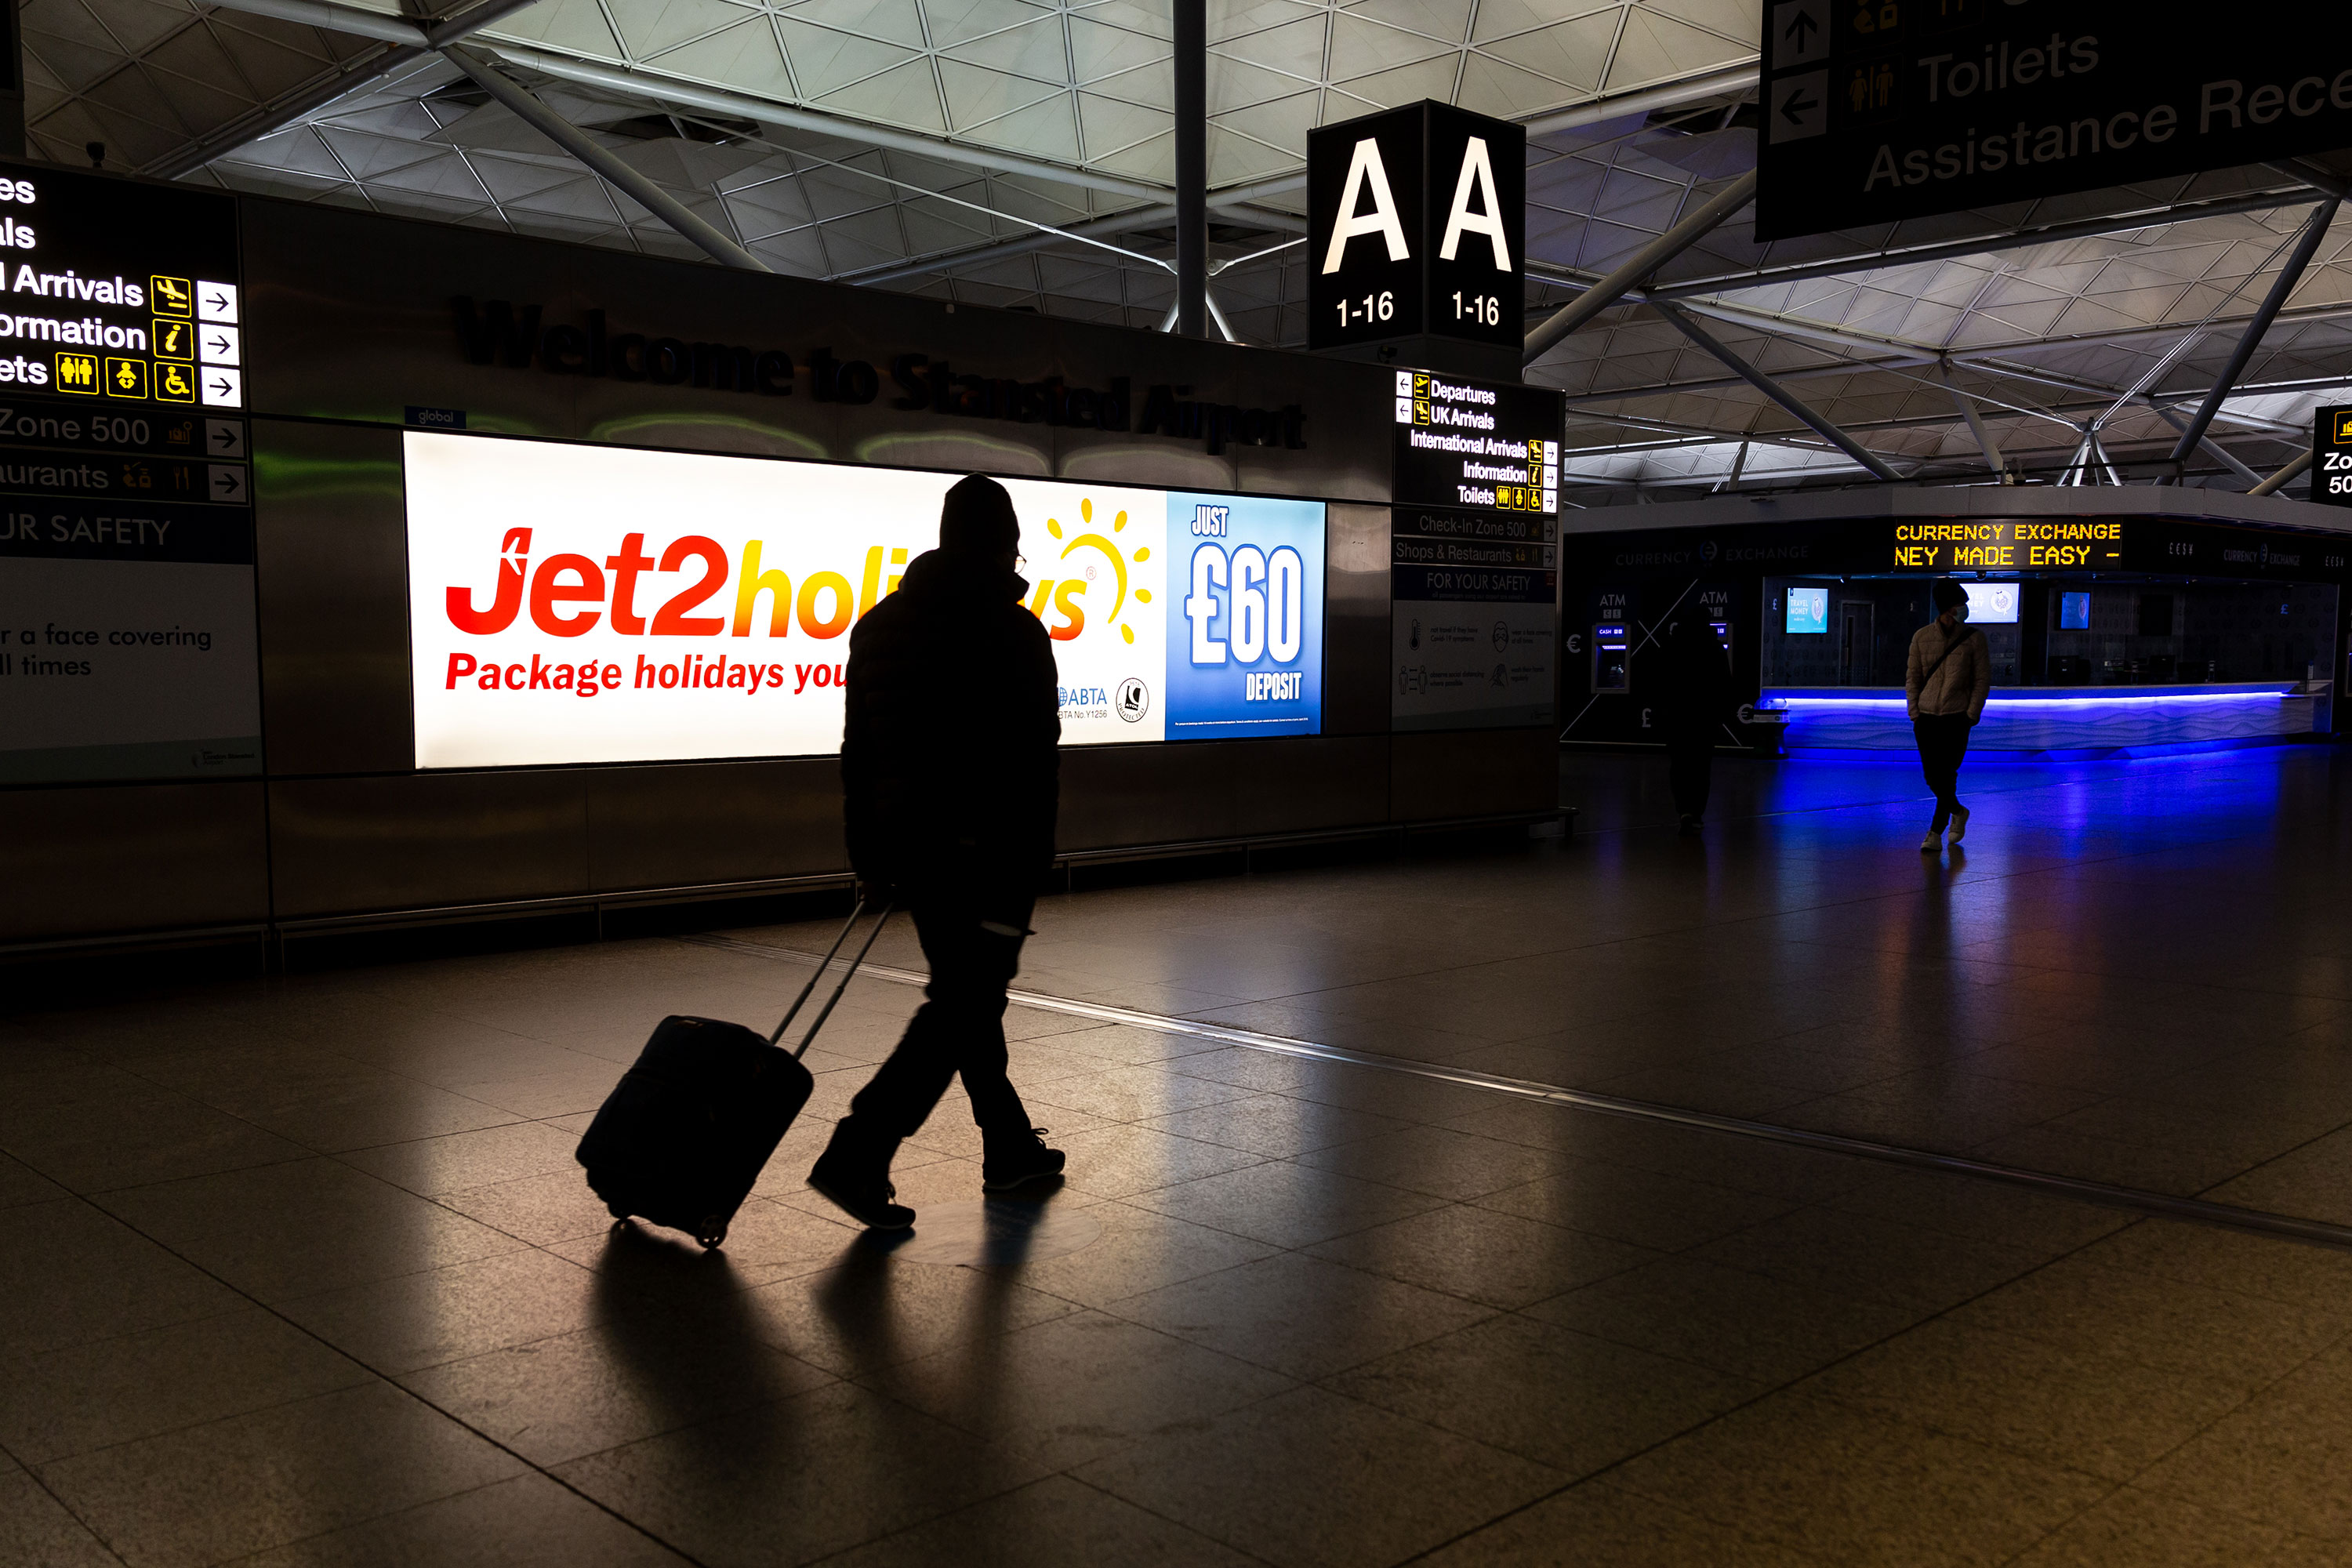 A passenger is seen arriving at London Stansted Airport in London, England, on January 9.